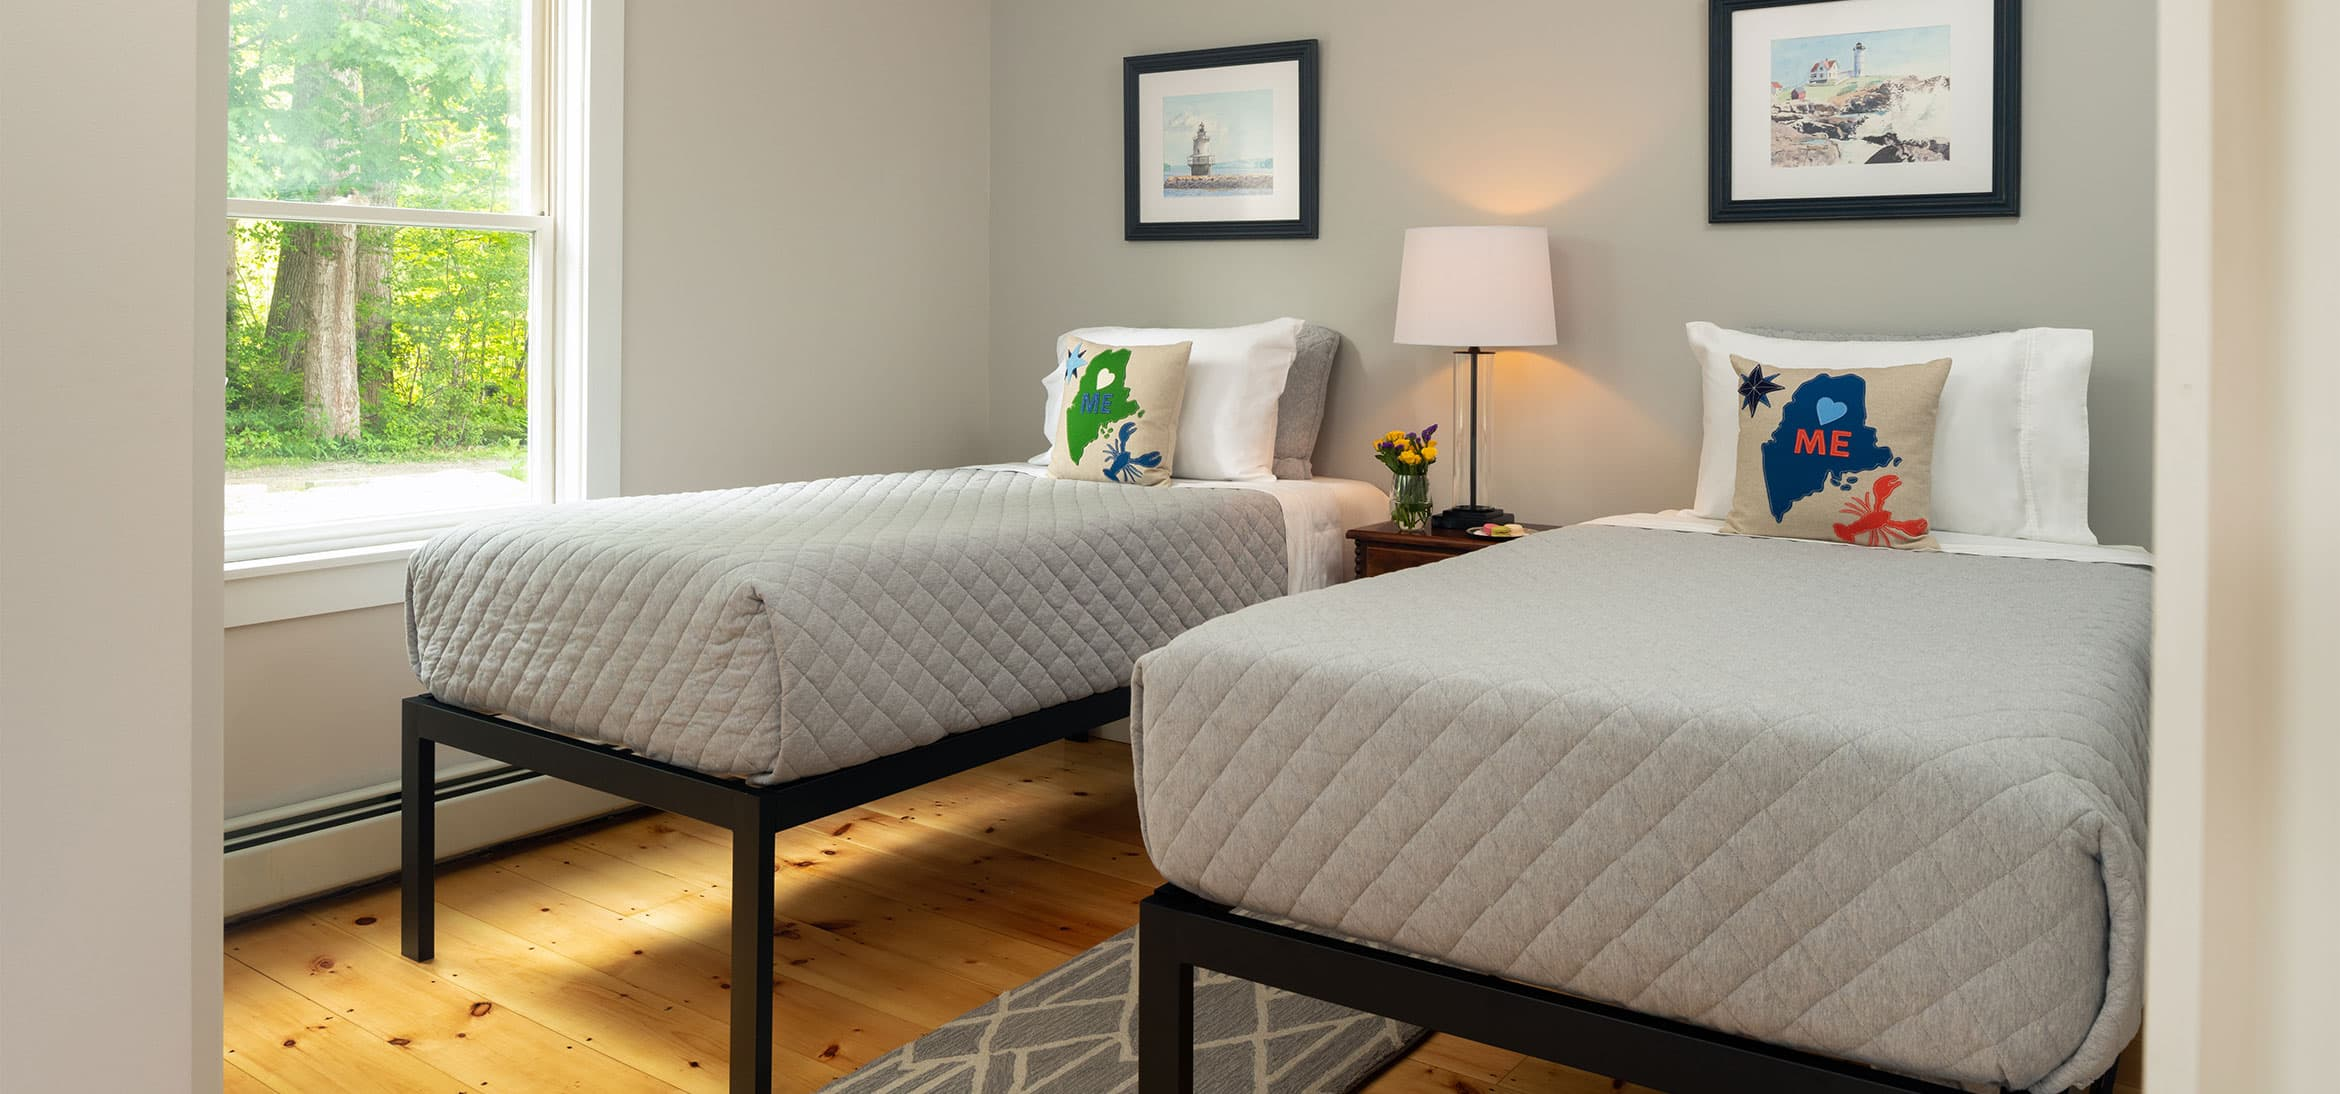 Two twin beds in a room with a bedside lamp